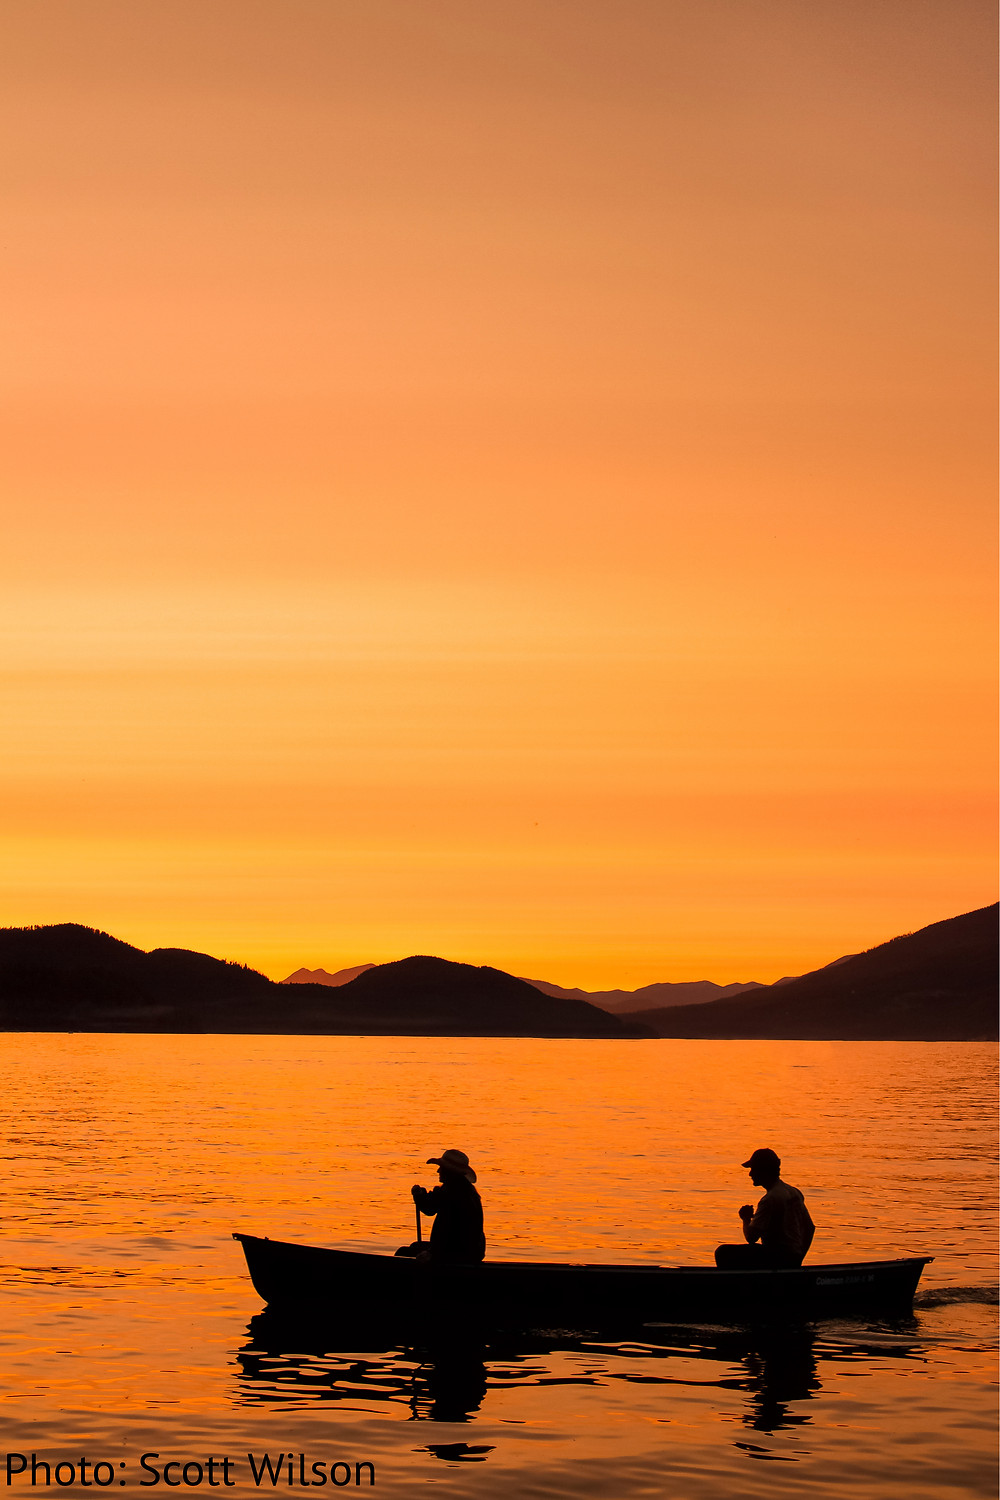 Two people in a canoe during sunset on Whitefish Lake in Northwestern Montana